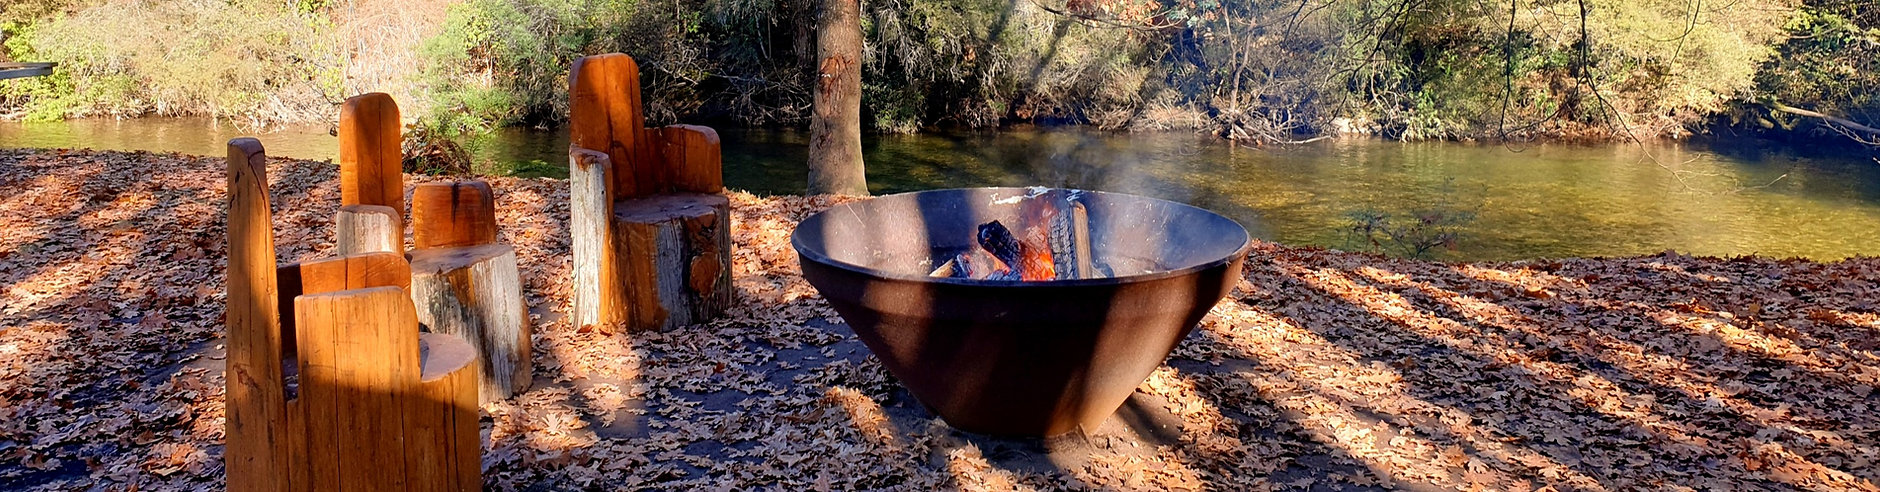 Campfire by the Jamieson river at the Caravan Park